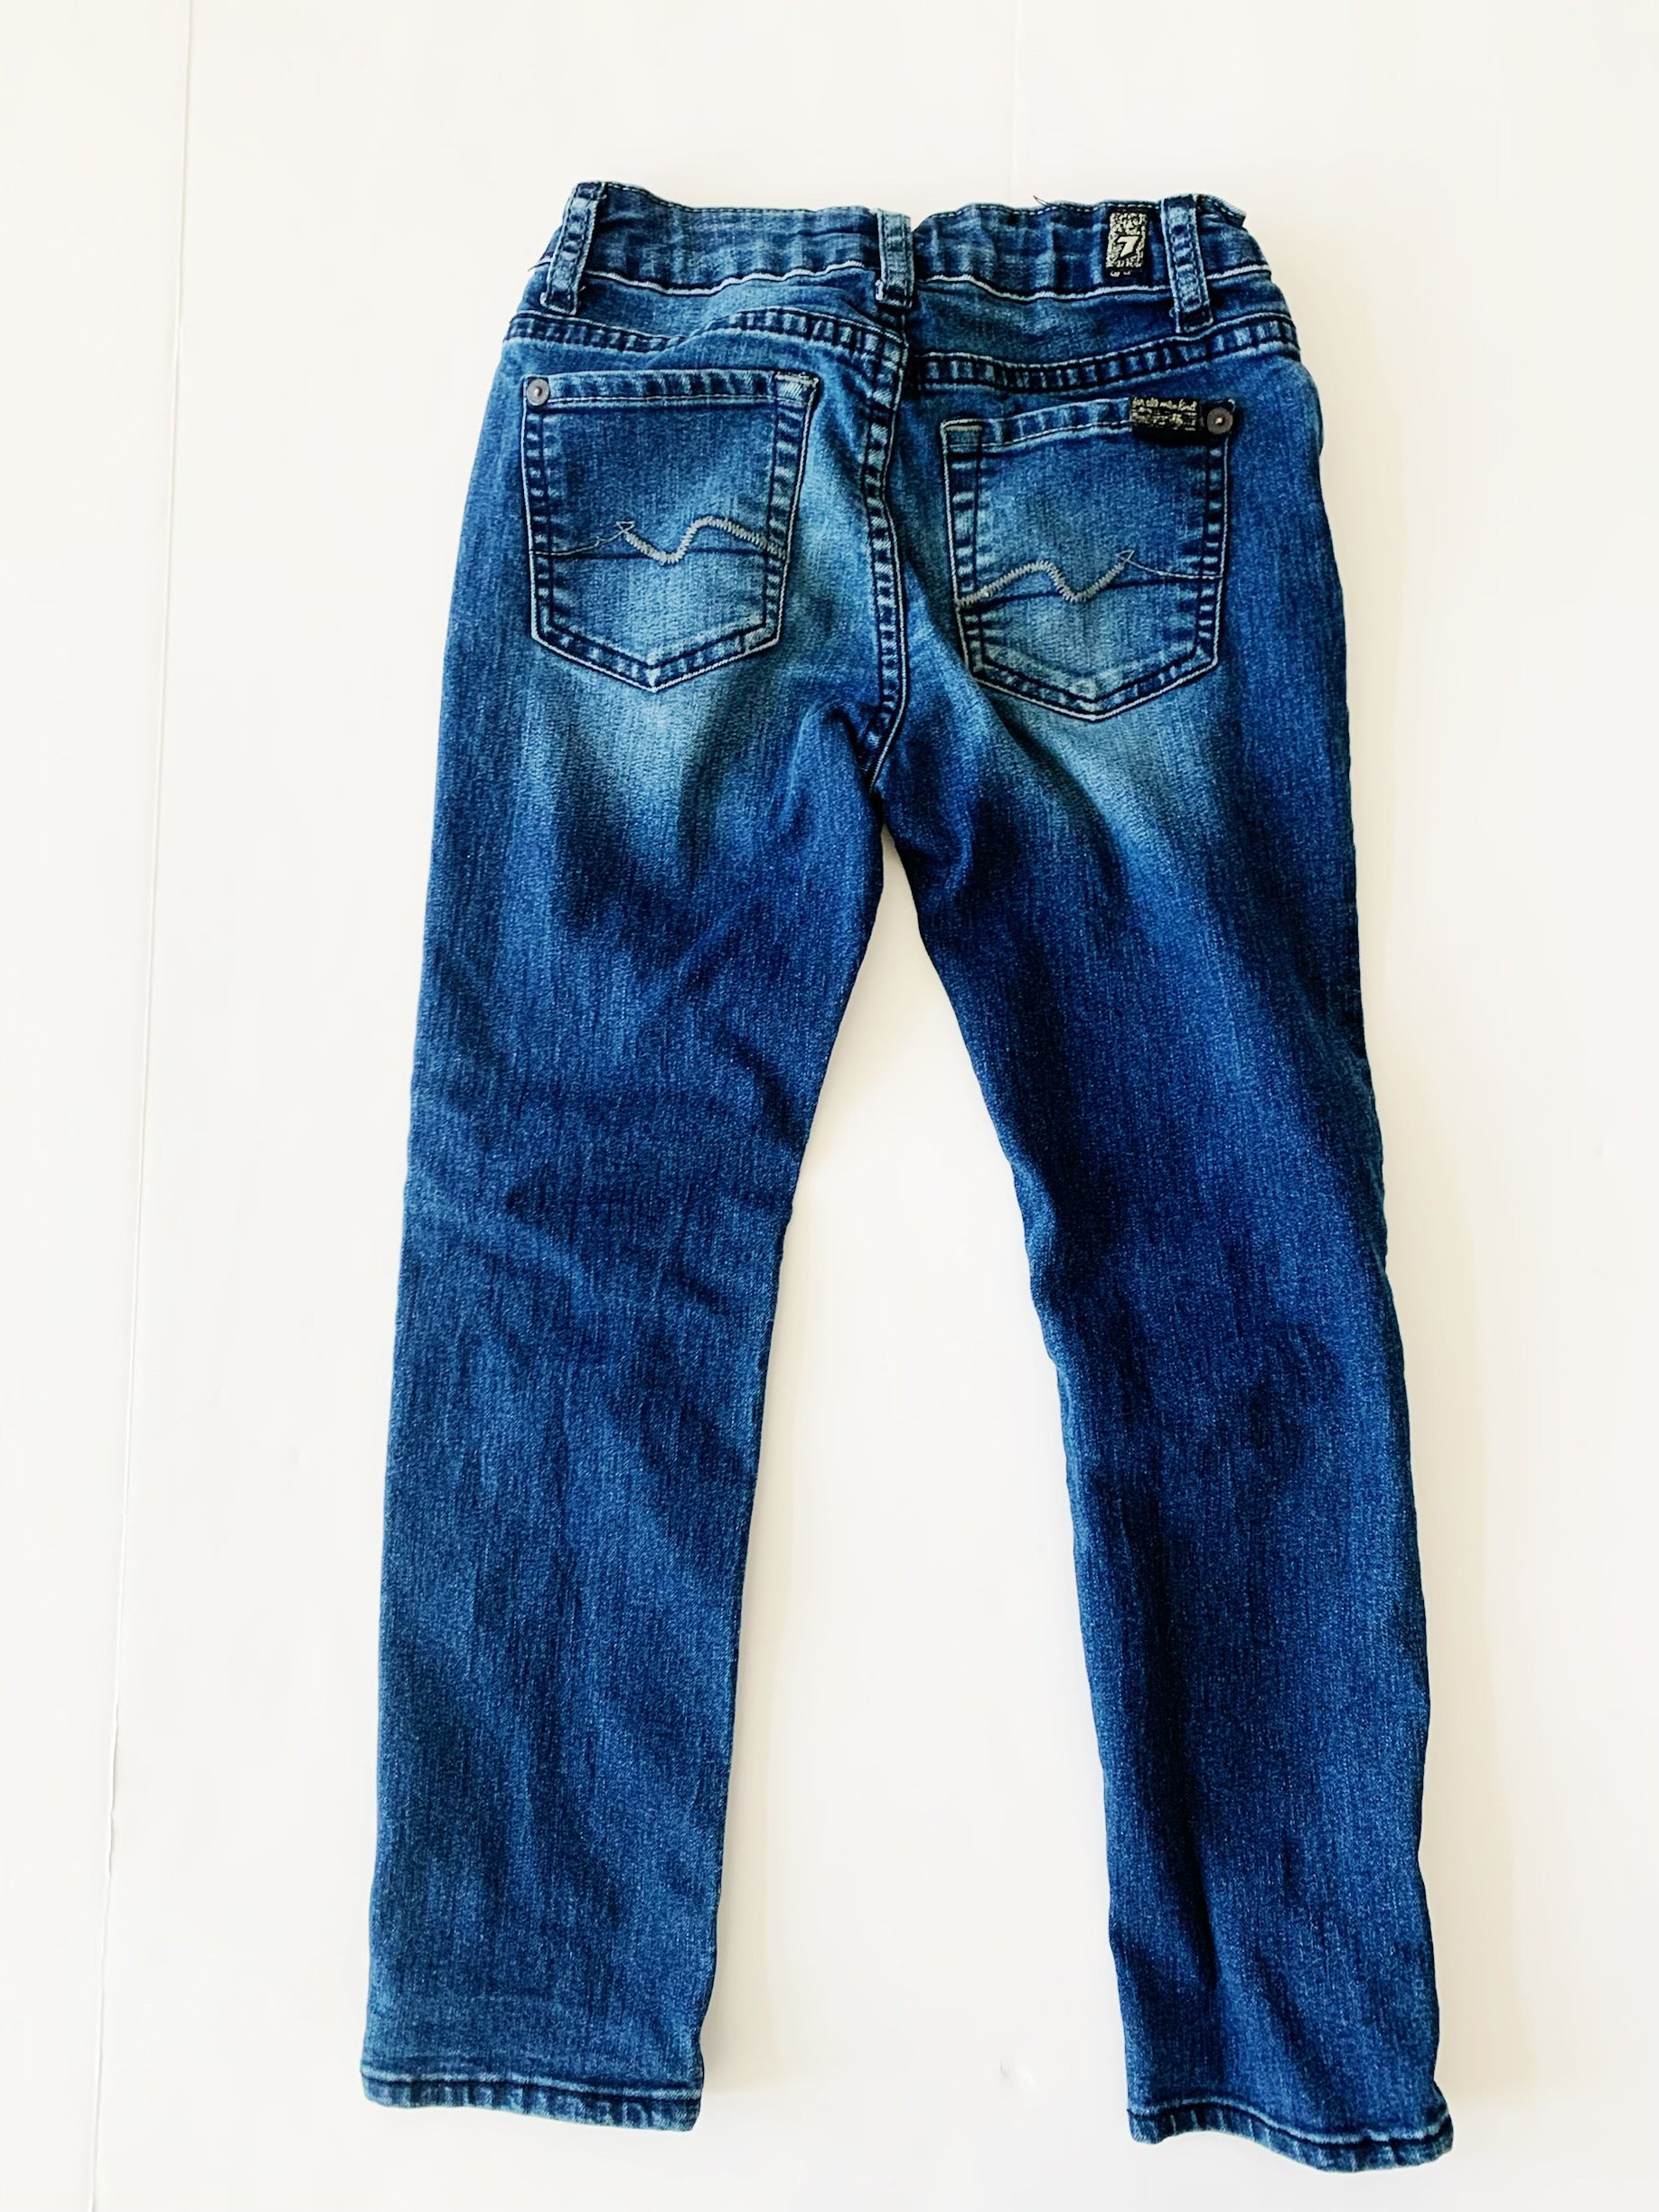 7 for All Mankind jeans size 7